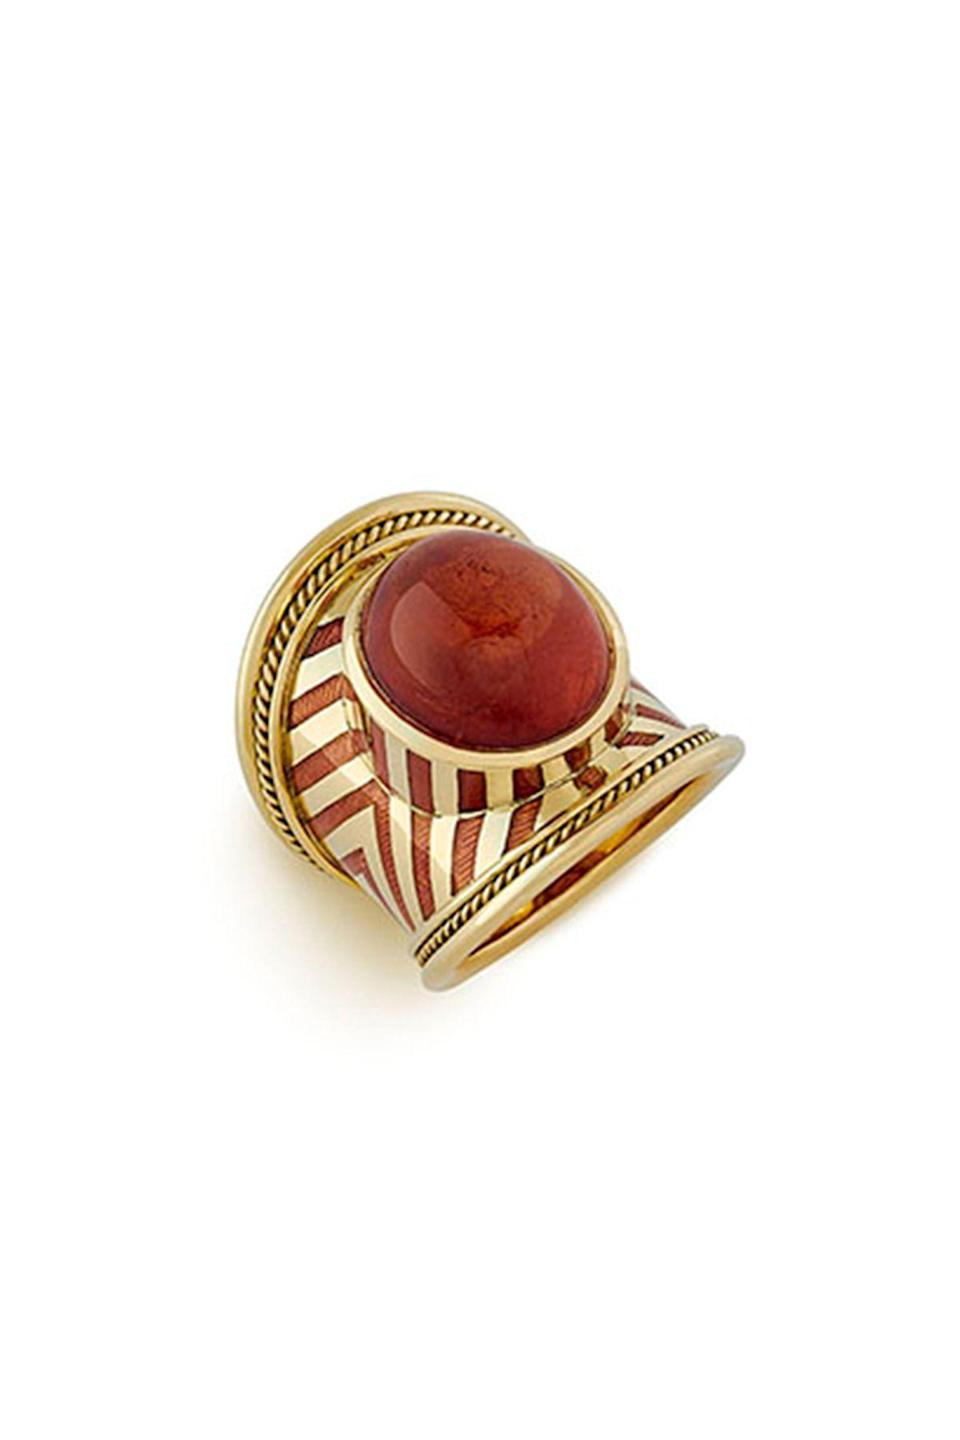 """<p><strong>Elizabeth Gage</strong></p><p>elizabeth-gage.com</p><p><strong>$14058.00</strong></p><p><a href=""""https://elizabeth-gage.com/rings/mandarin-garnet-tapered-templar/"""" rel=""""nofollow noopener"""" target=""""_blank"""" data-ylk=""""slk:Shop Now"""" class=""""link rapid-noclick-resp"""">Shop Now</a></p><p>Elizabeth Gage employs expert goldsmiths to handcraft all of her pieces—the designer herself is also a trained goldsmith. In 2017, Queen Elizabeth appointed Gage a Member Of The Most Excellent Order Of The British Empire. </p>"""